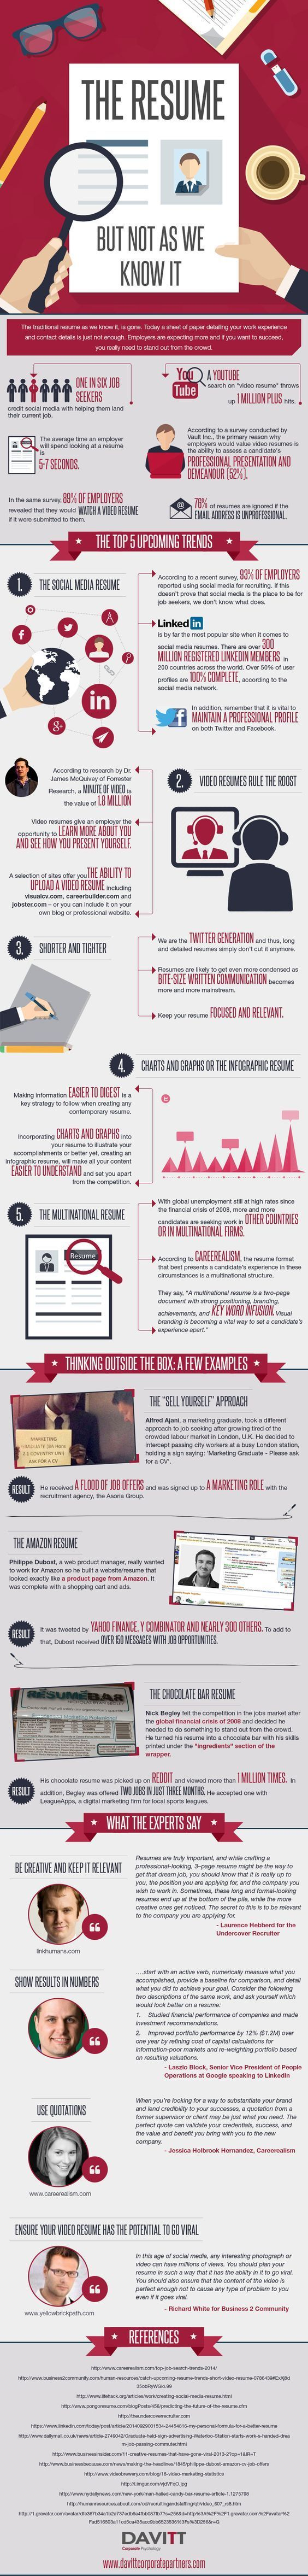 3 Types Of Resumes Endearing Handy Infographic On Things To Think About When Deciding What Type .